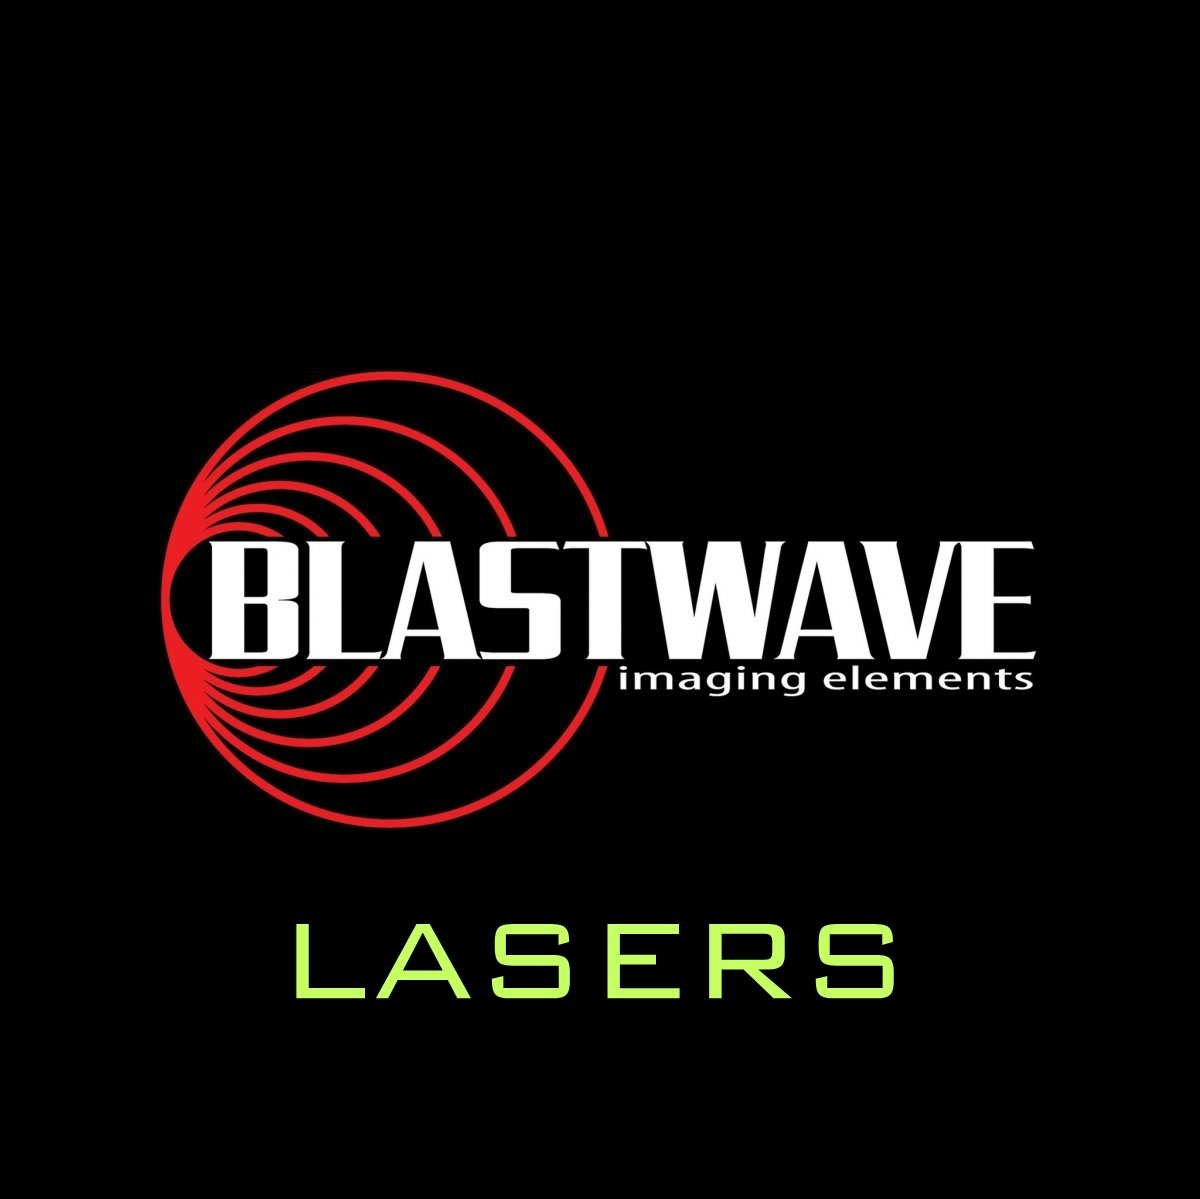 Blastwave Imaging Elements Lasers ACID WAV